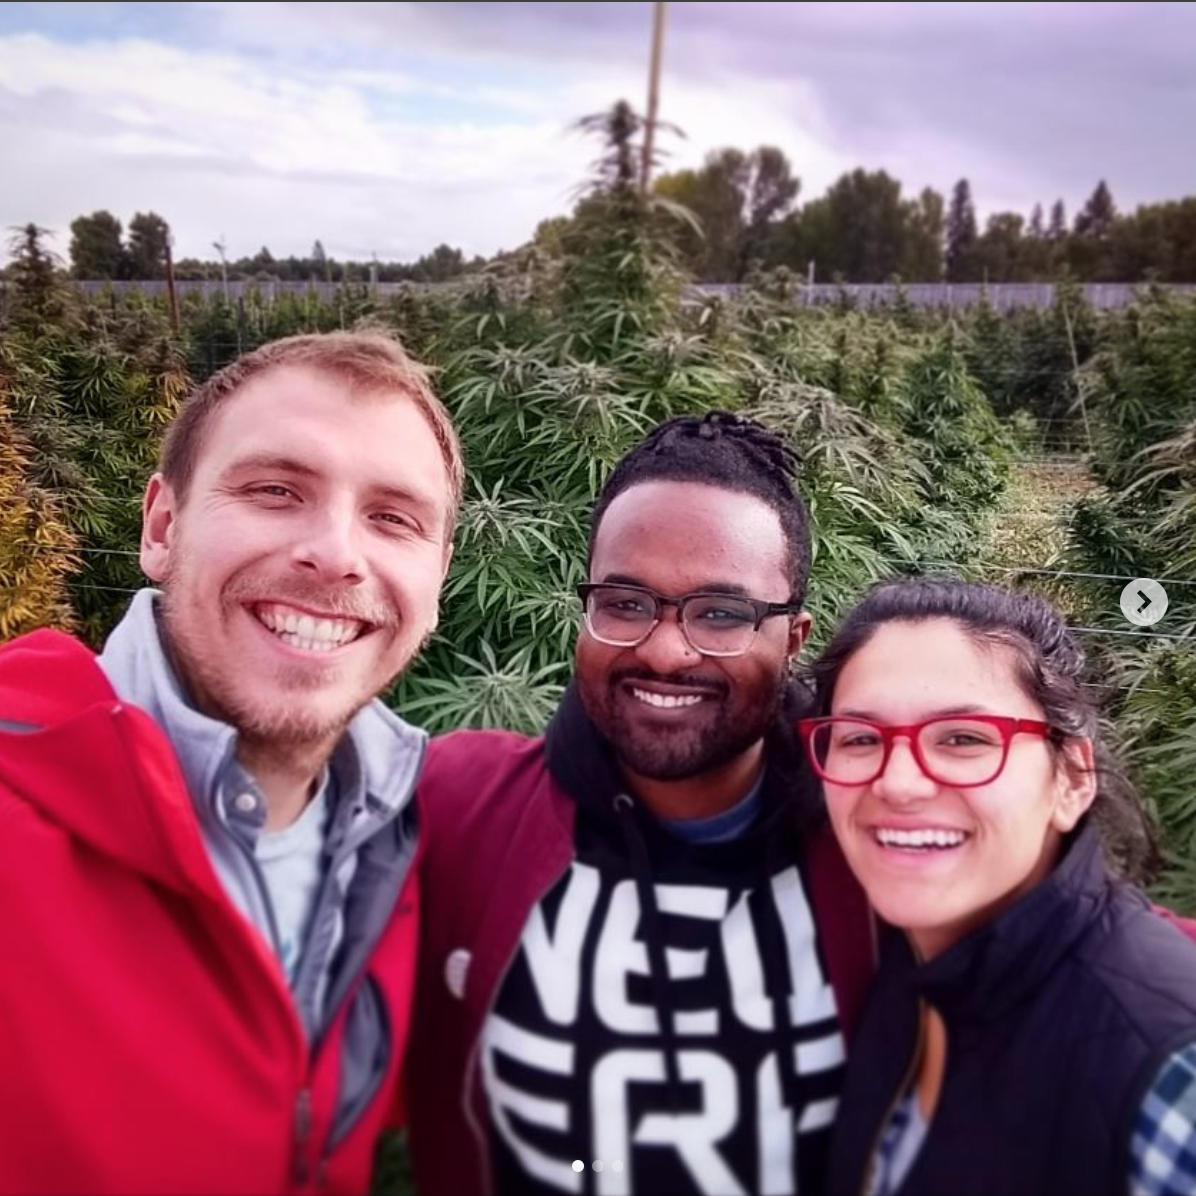 Heylo Cannabis Extracts visiting Puffin Farms to source high CBD cannabis strains to turn into their award winning cannabis oil.